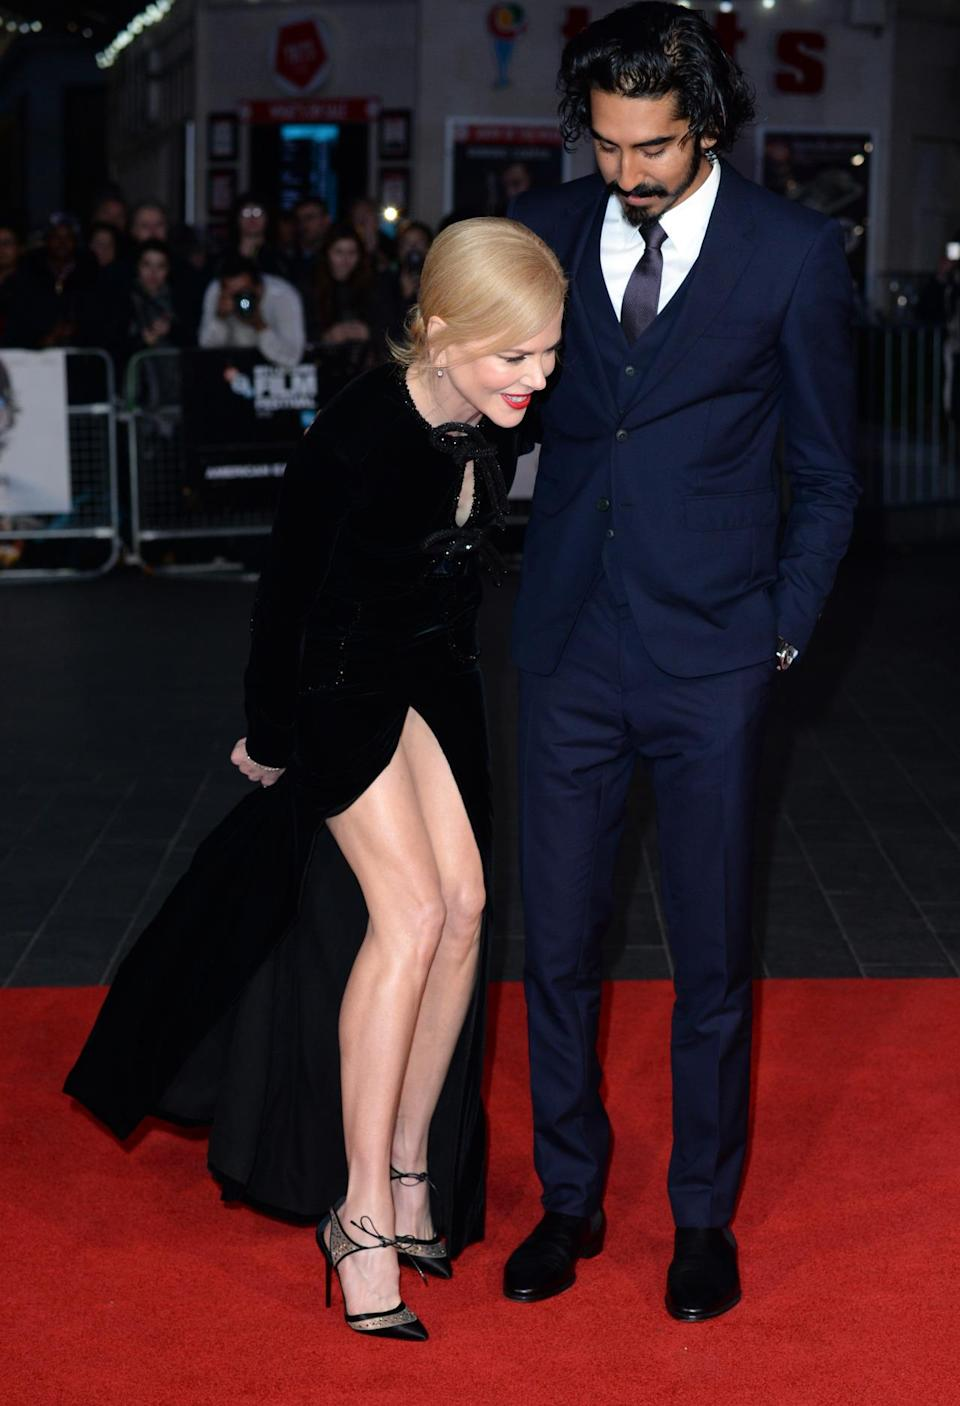 <p>The Aussie actress struggled to maintain her dignity in a revealing Armani Prive dress at the London premiere of her film 'Lion'. Clearly no one warned her about Britain's blustery weather… <i>[Photo: Getty]</i></p>